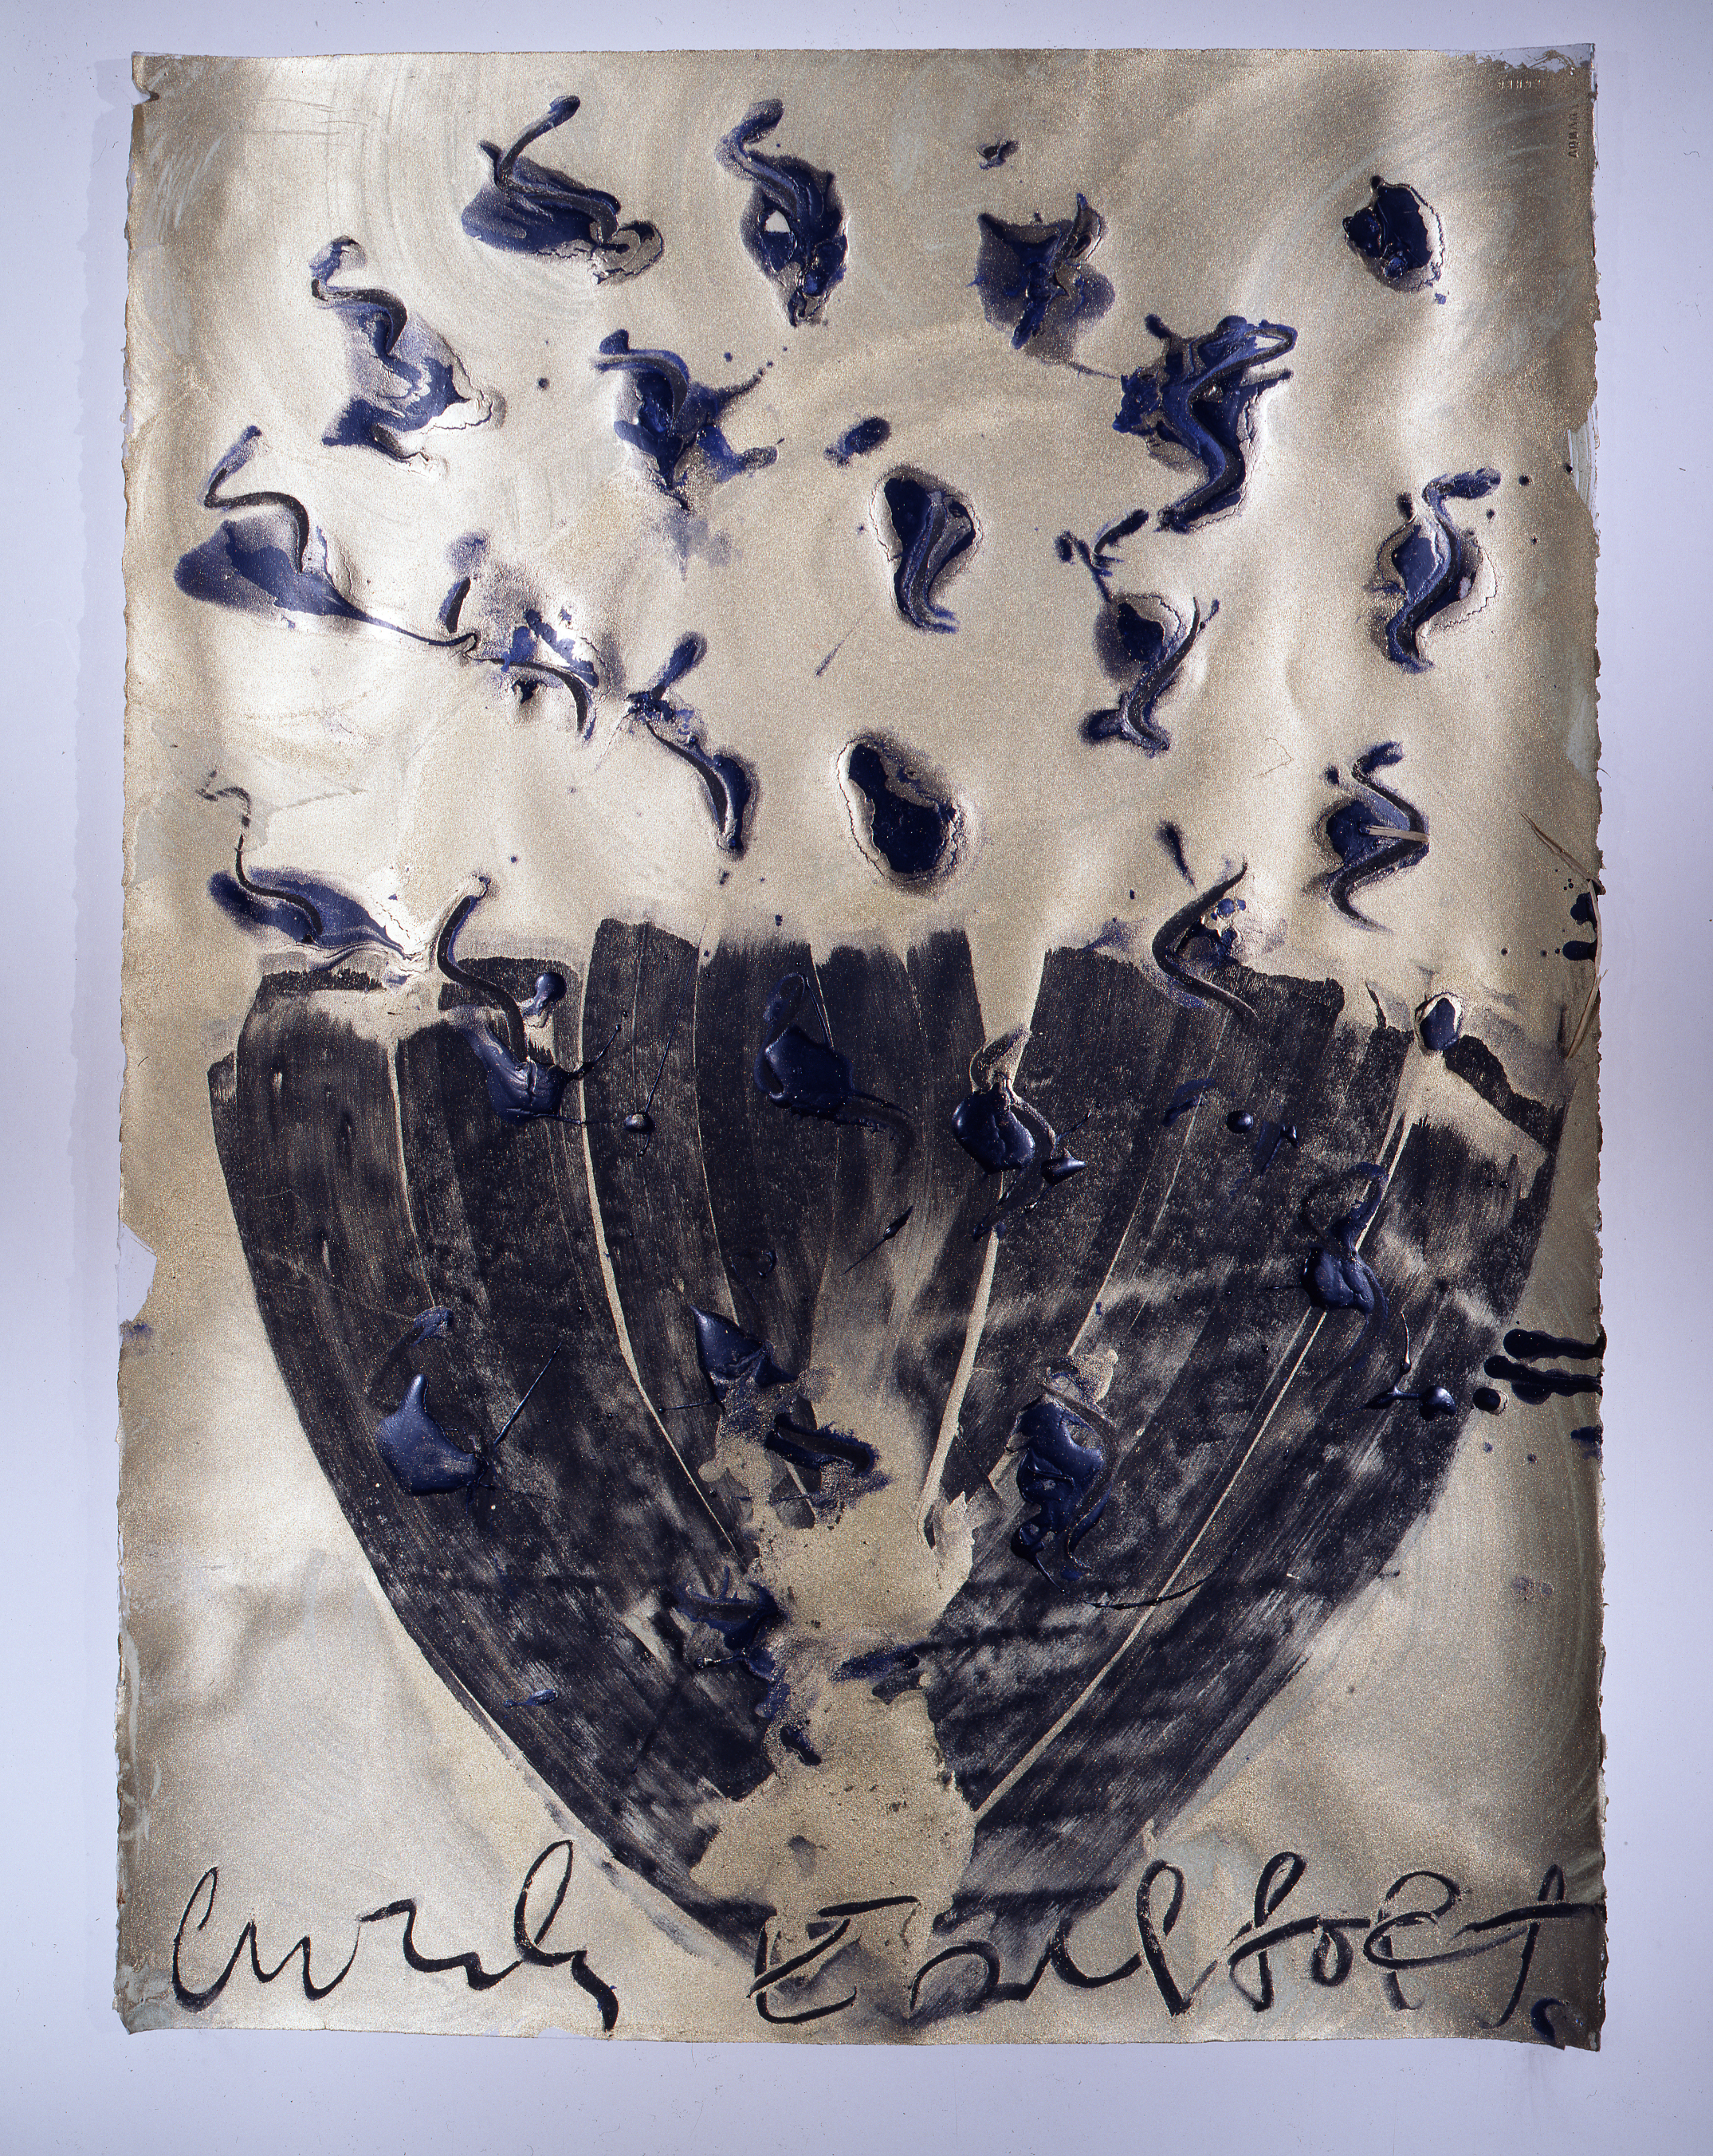 Dale Chihuly, Ebeltoft Drawing, (1991, mixed media on paper, 30 x 22 inches), DC.342